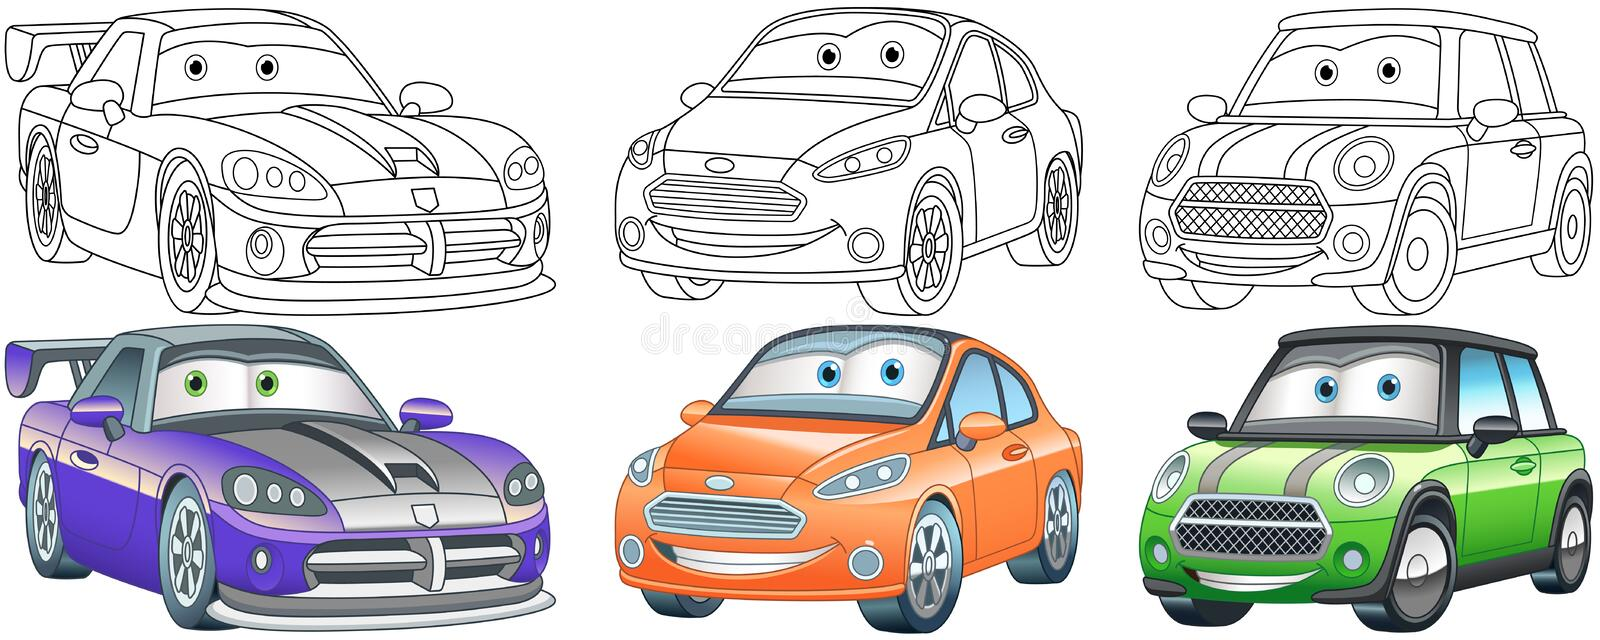 Cartoon Cars Coloring Pages Set Stock Vector Illustration Of Book Character 184754148